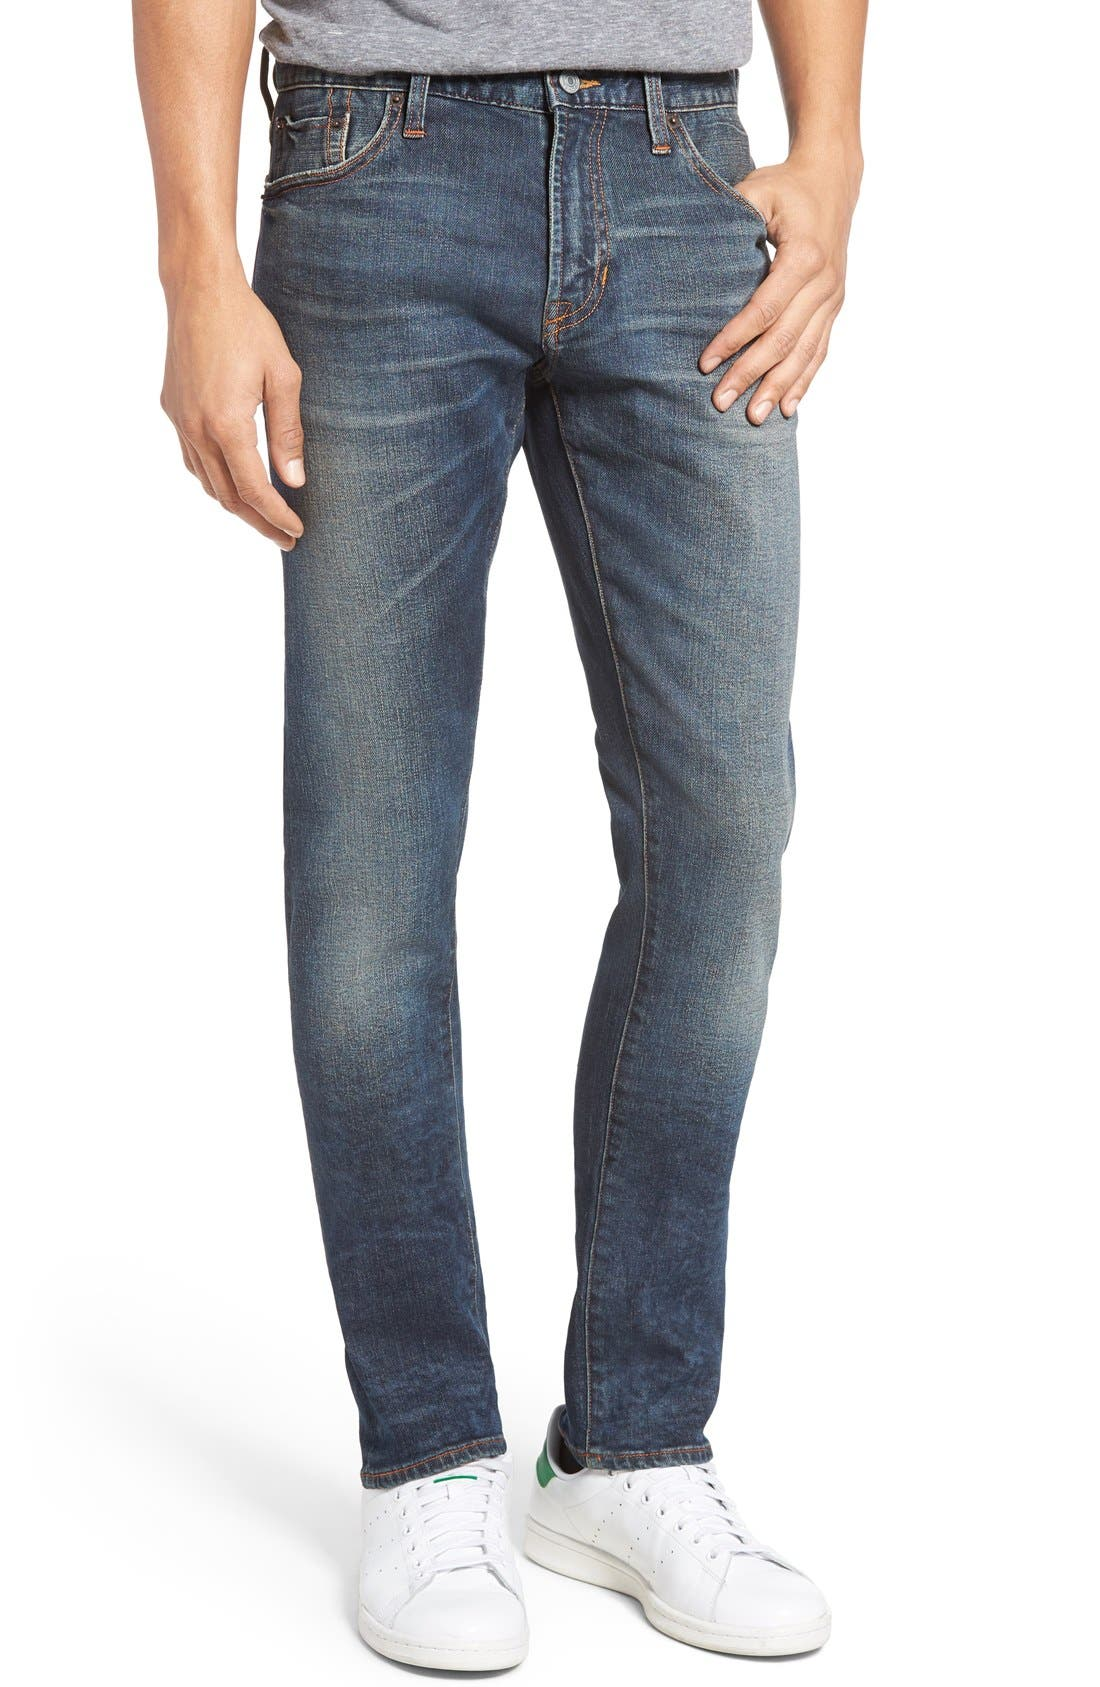 Jean Shop Jim Slim Fit Selvedge Jeans (Hoboken)